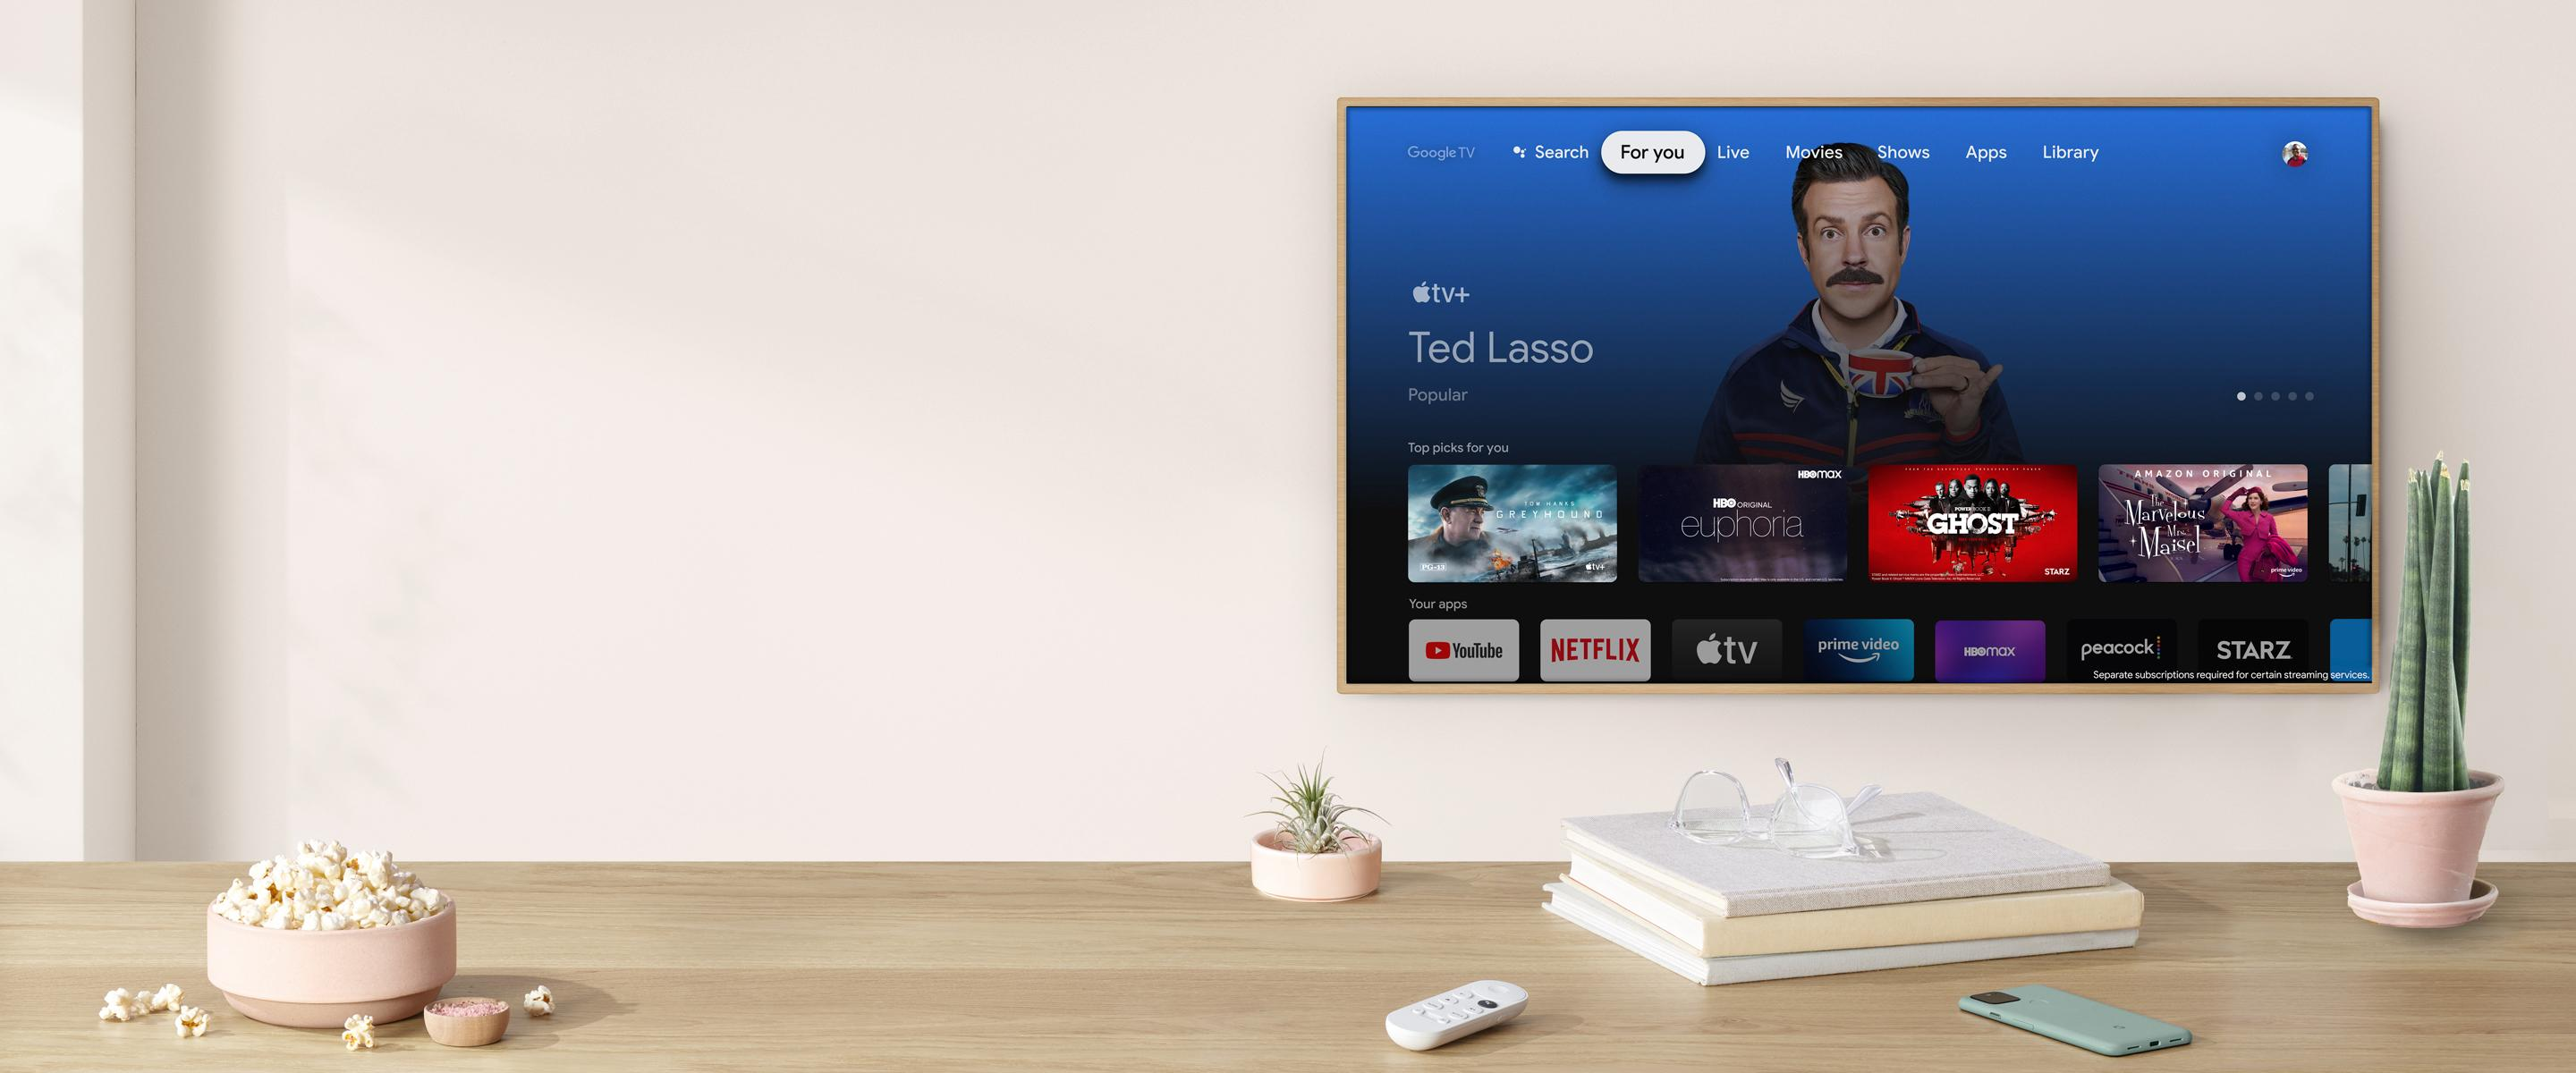 Apple TV+ is now available on Google TV - Engadget